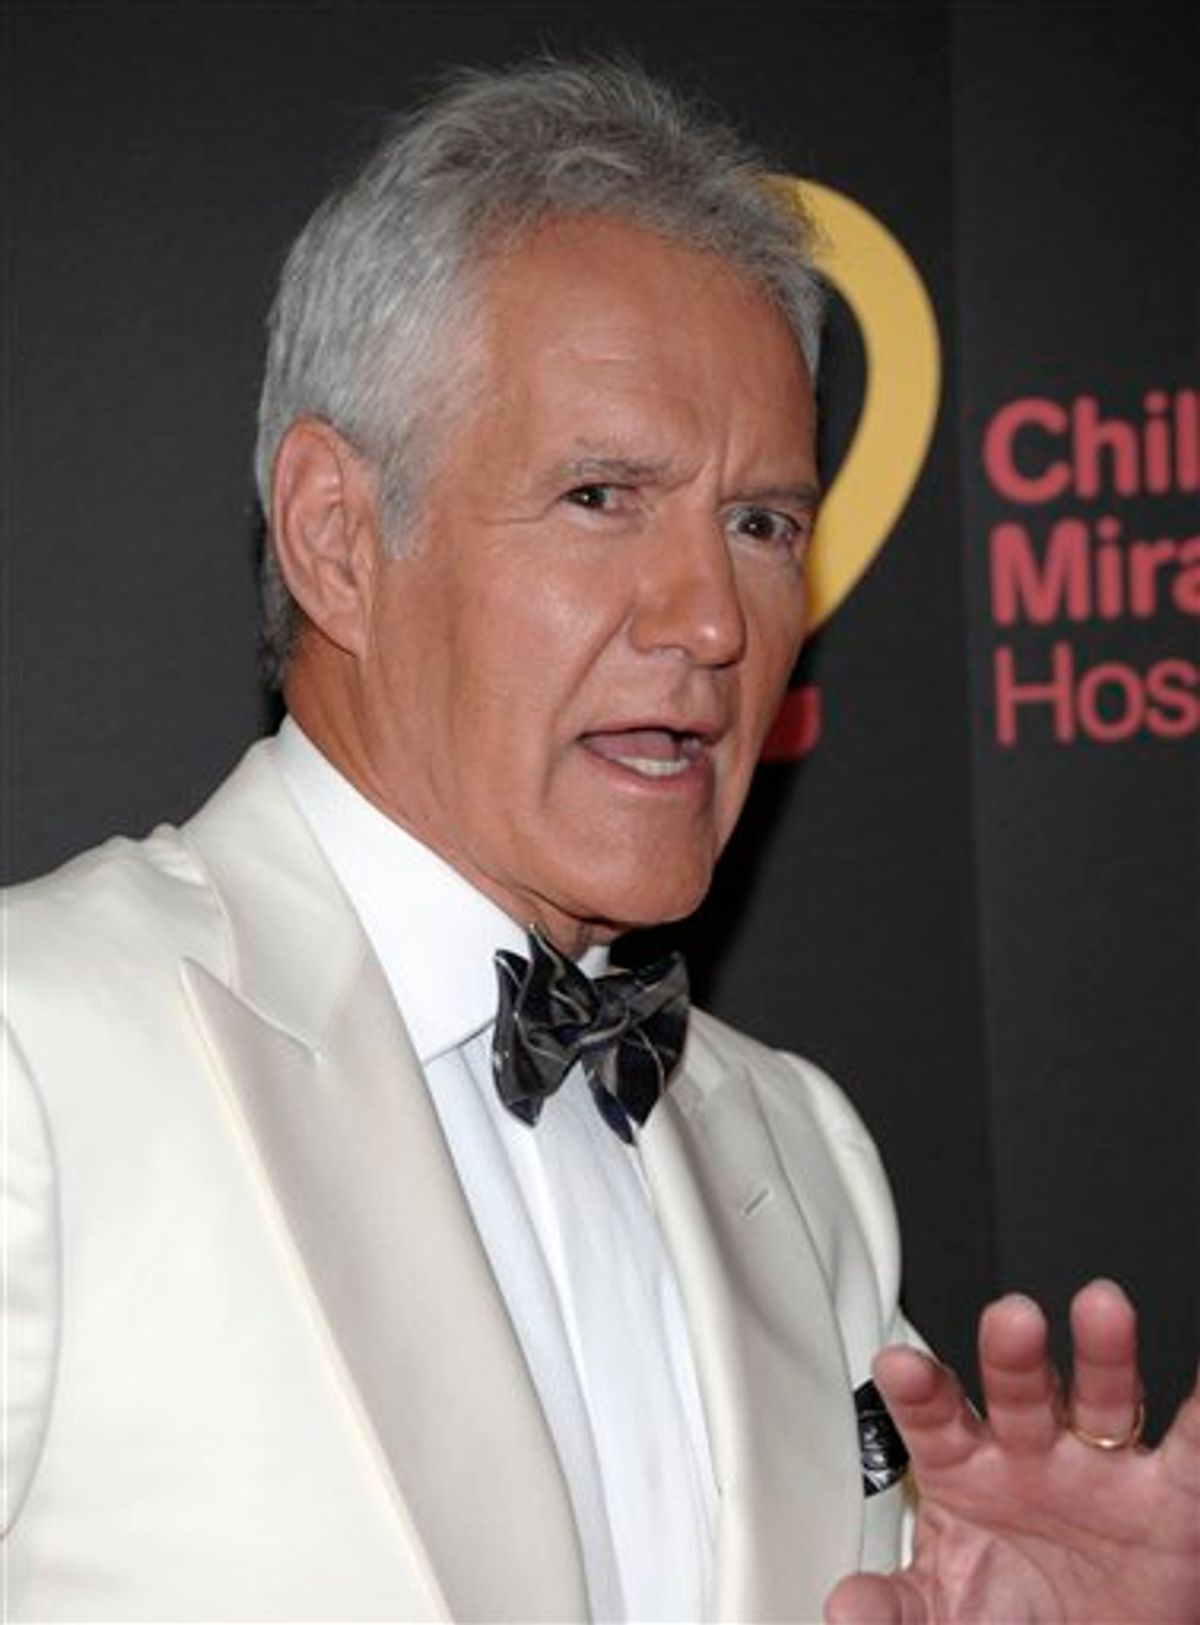 Television personality Alex Trebek arrives at the 38th Annual Daytime Emmy Awards in Las Vegas on Sunday, June 19, 2011. (AP Photo/Dan Steinberg)     (AP)